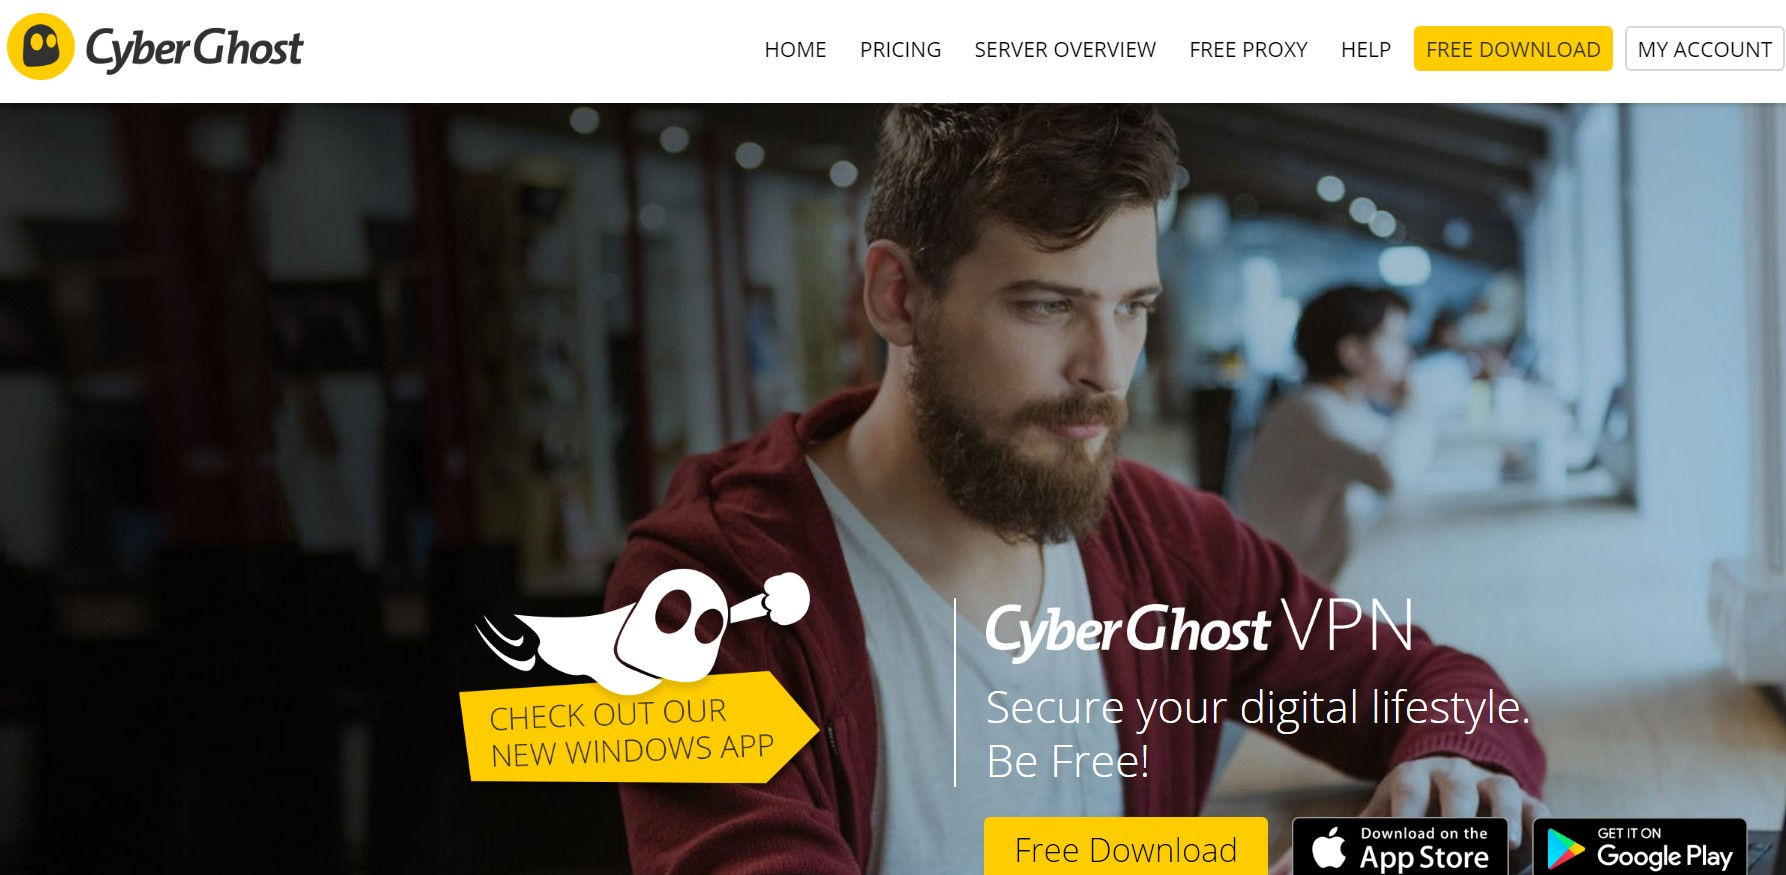 Cyberghost VPN Home Page